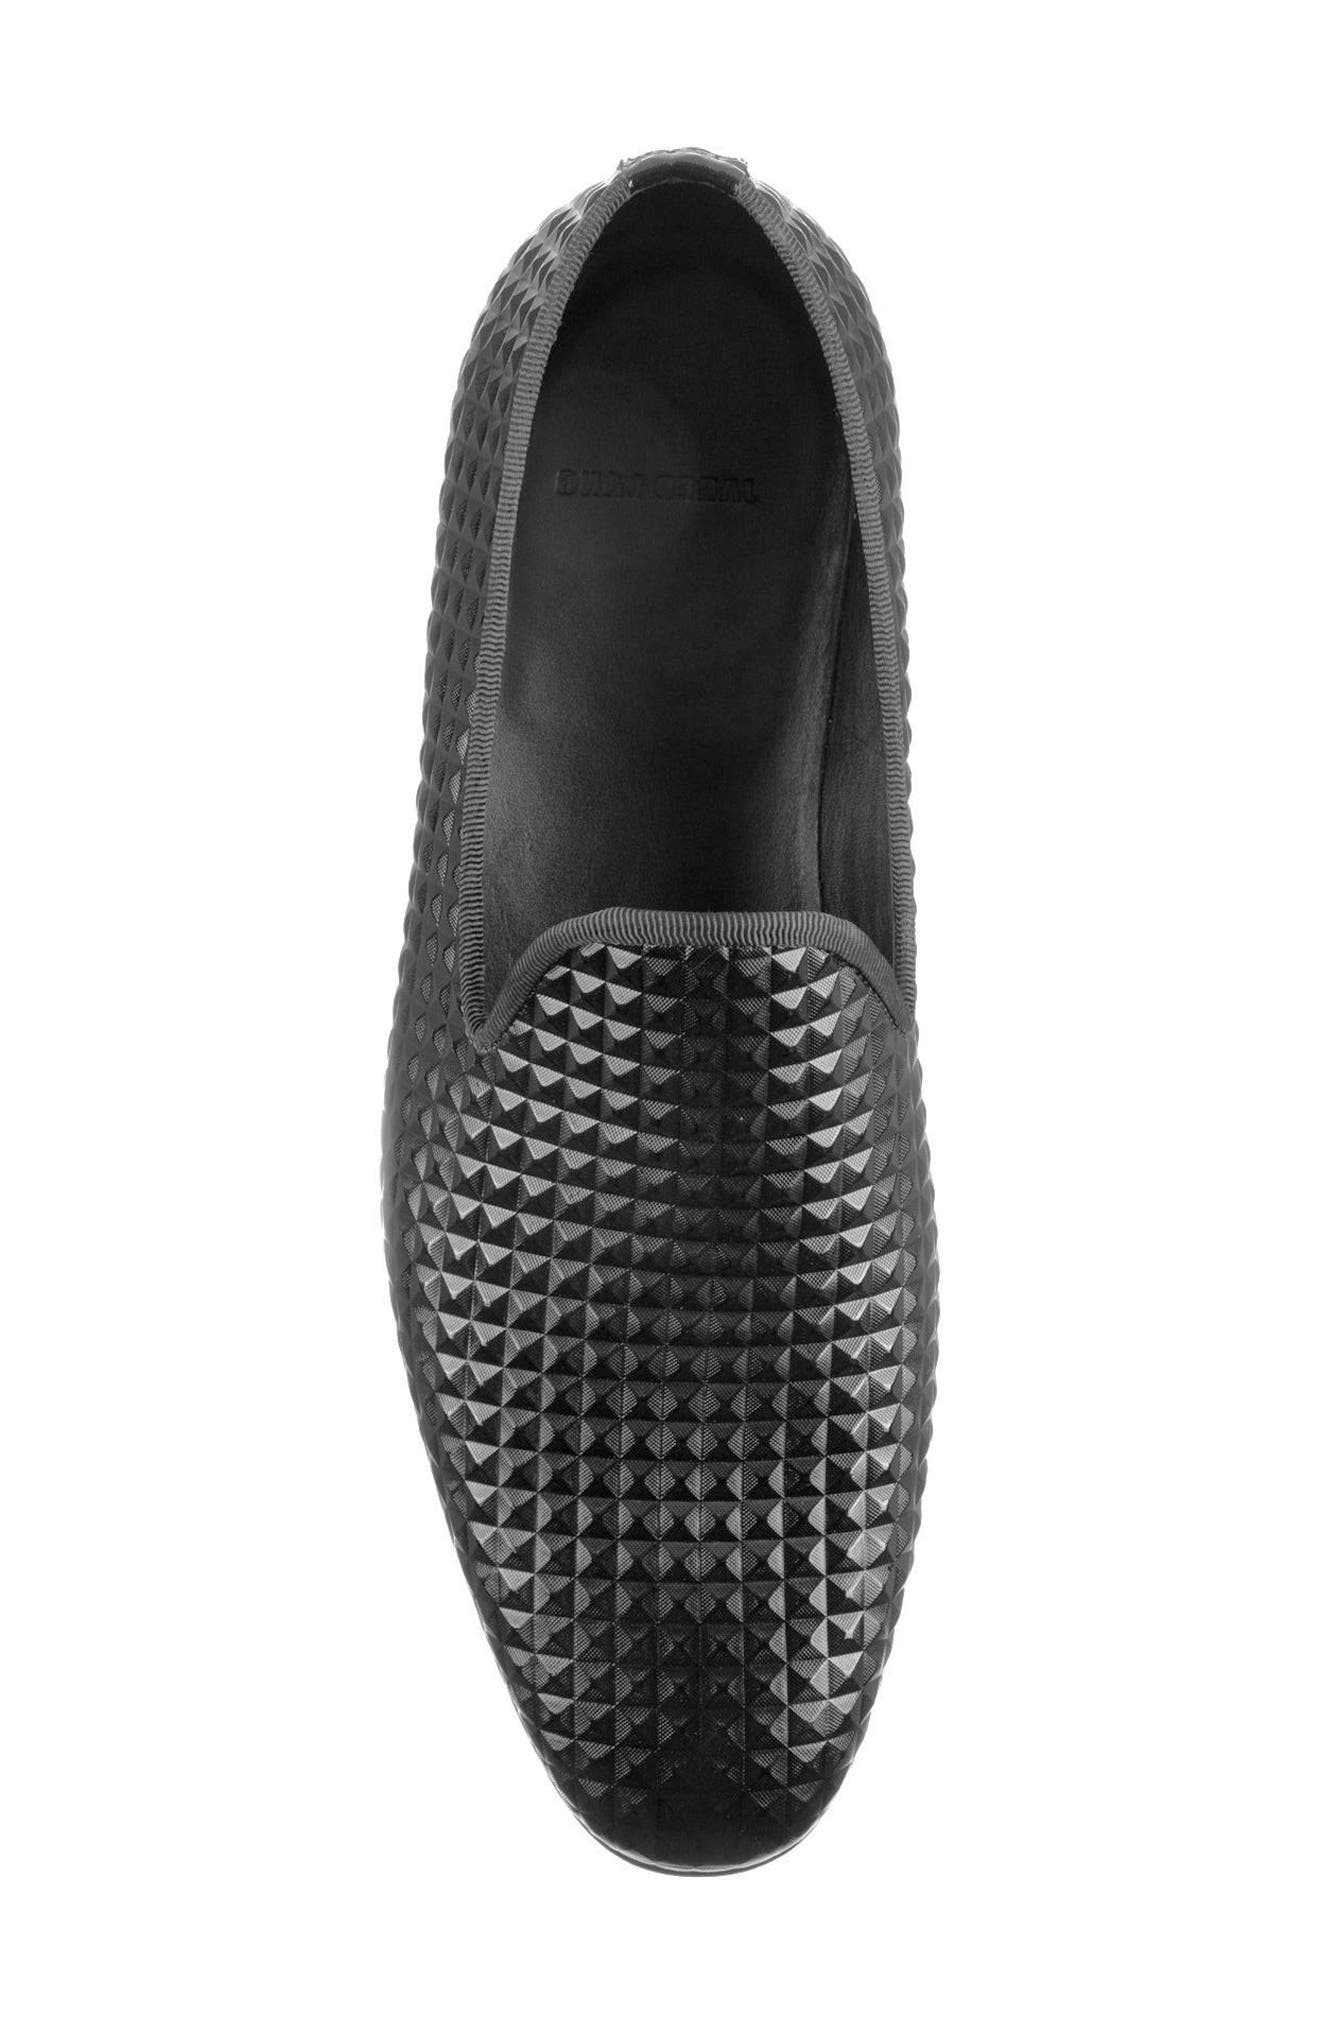 Hugh Pyramid Embossed Venetian Loafer,                             Alternate thumbnail 5, color,                             Black Leather